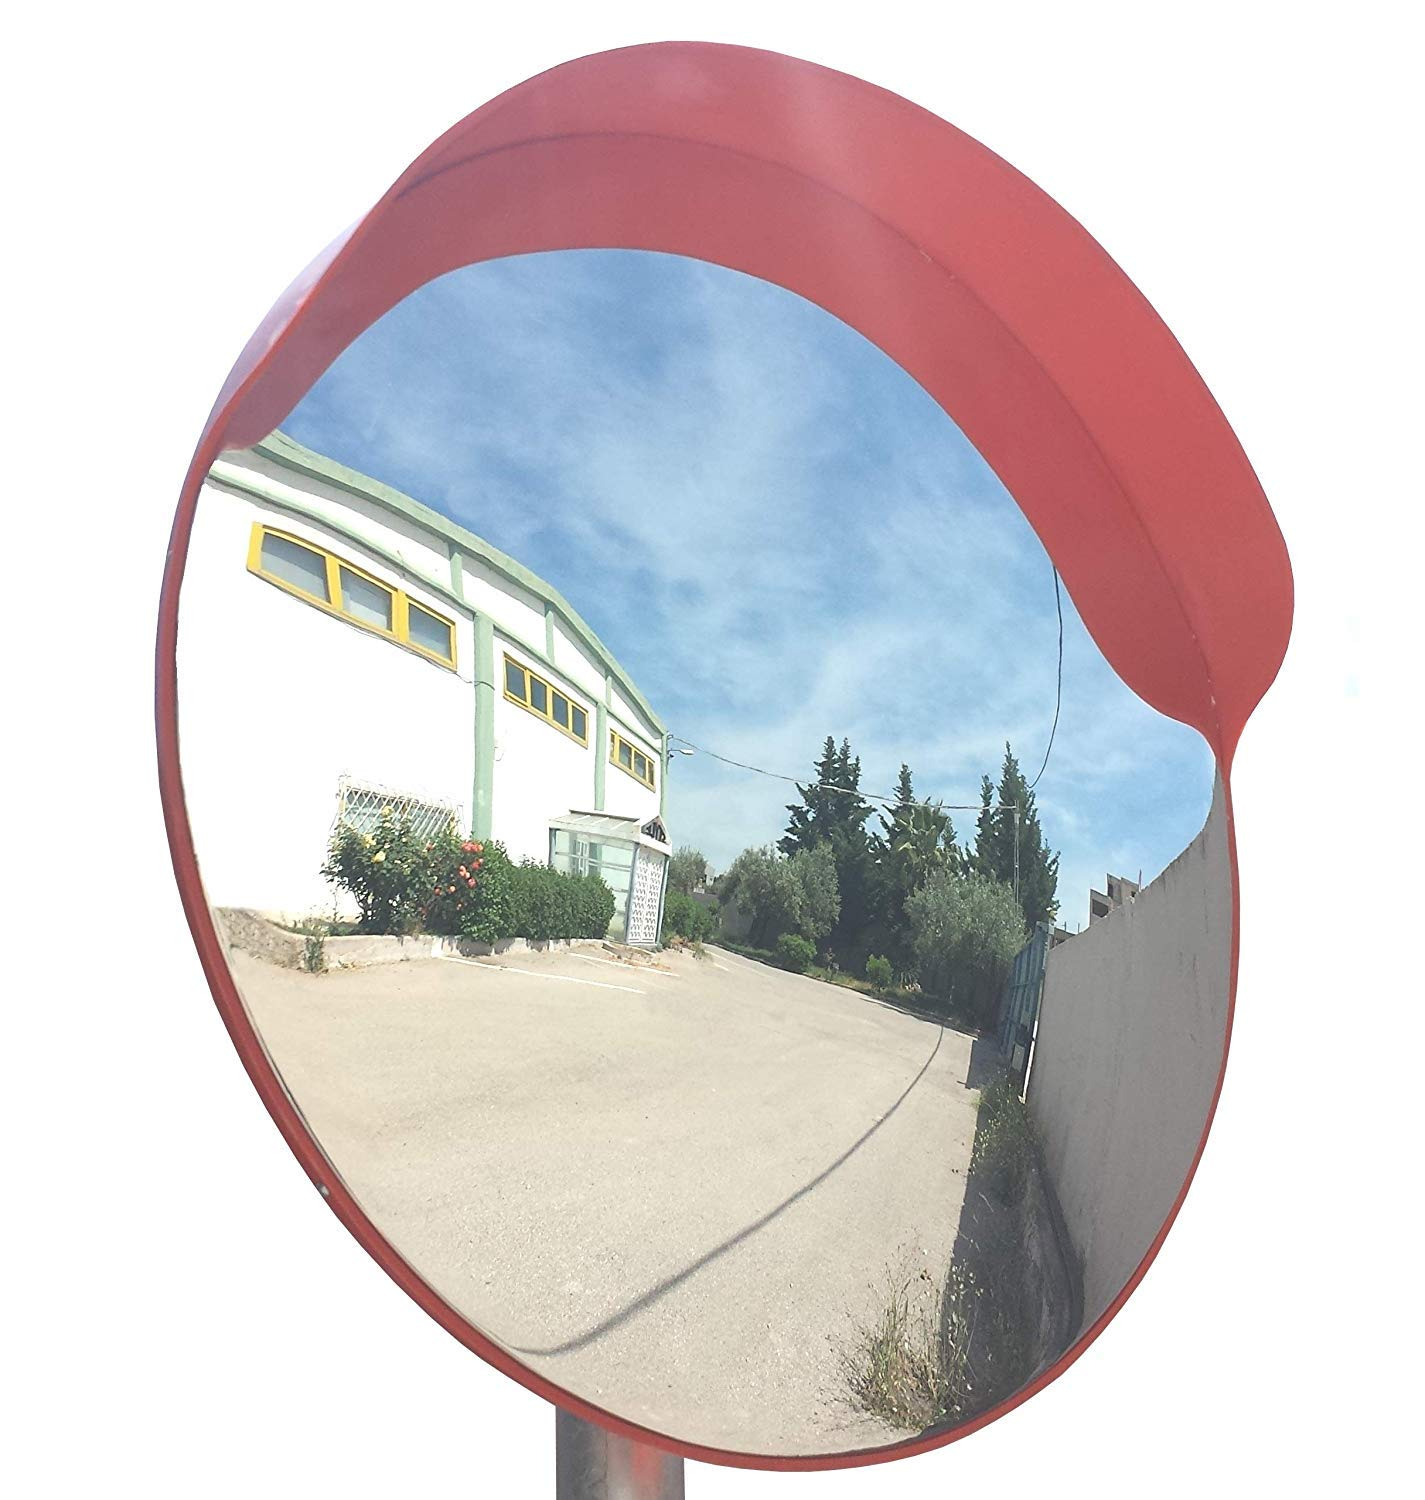 Convex Traffic Mirror 18'' for Driveway, Garage and Warehouse Safety or Store and Office Security, with Adjustable Wall and Pole Bracket, for Blind Spots and Corners, Indoor and Outdoor (Pack of 1)